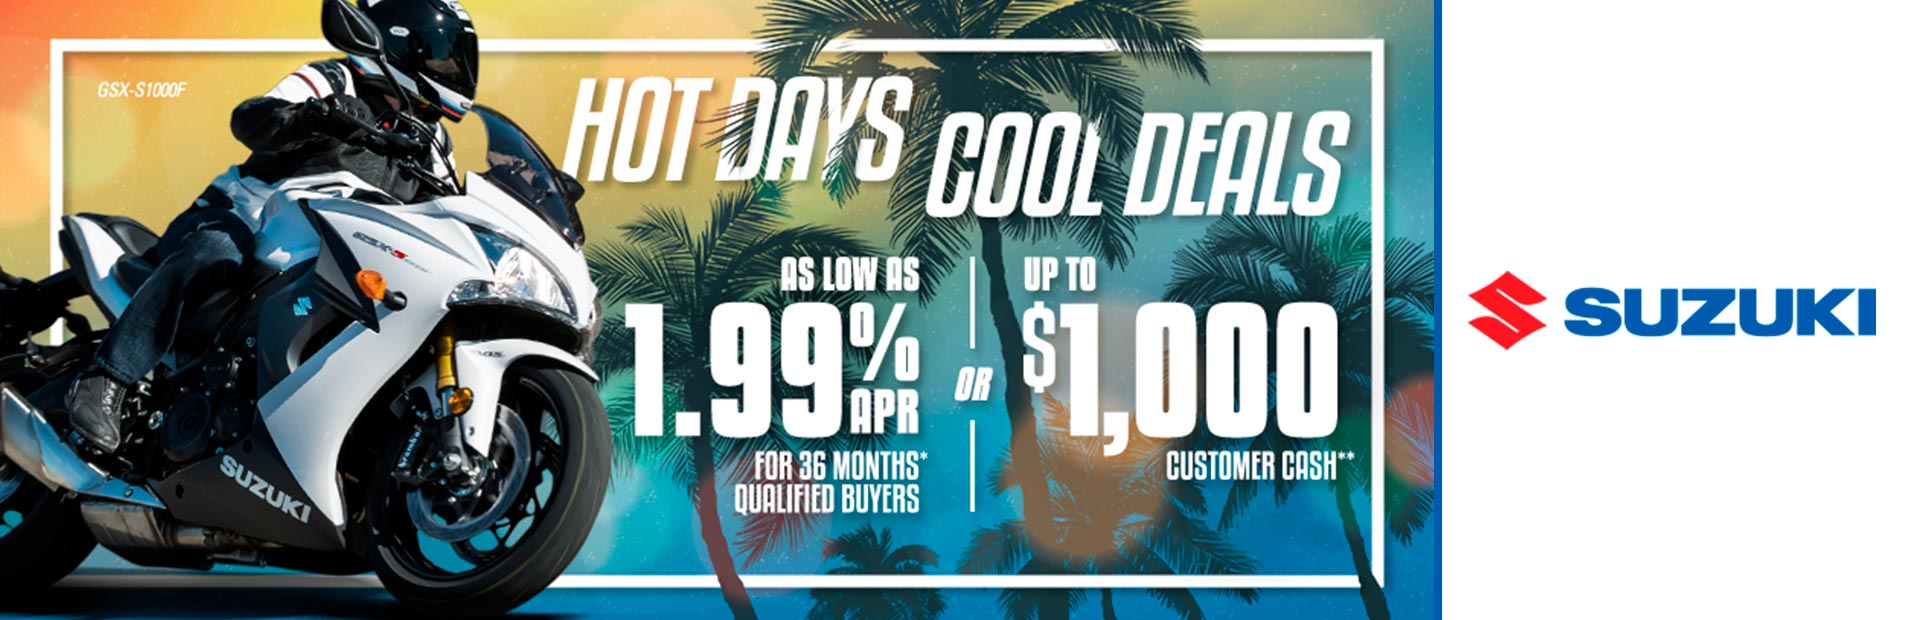 Suzuki: Suzuki - HOT DAYS COOL DEALS